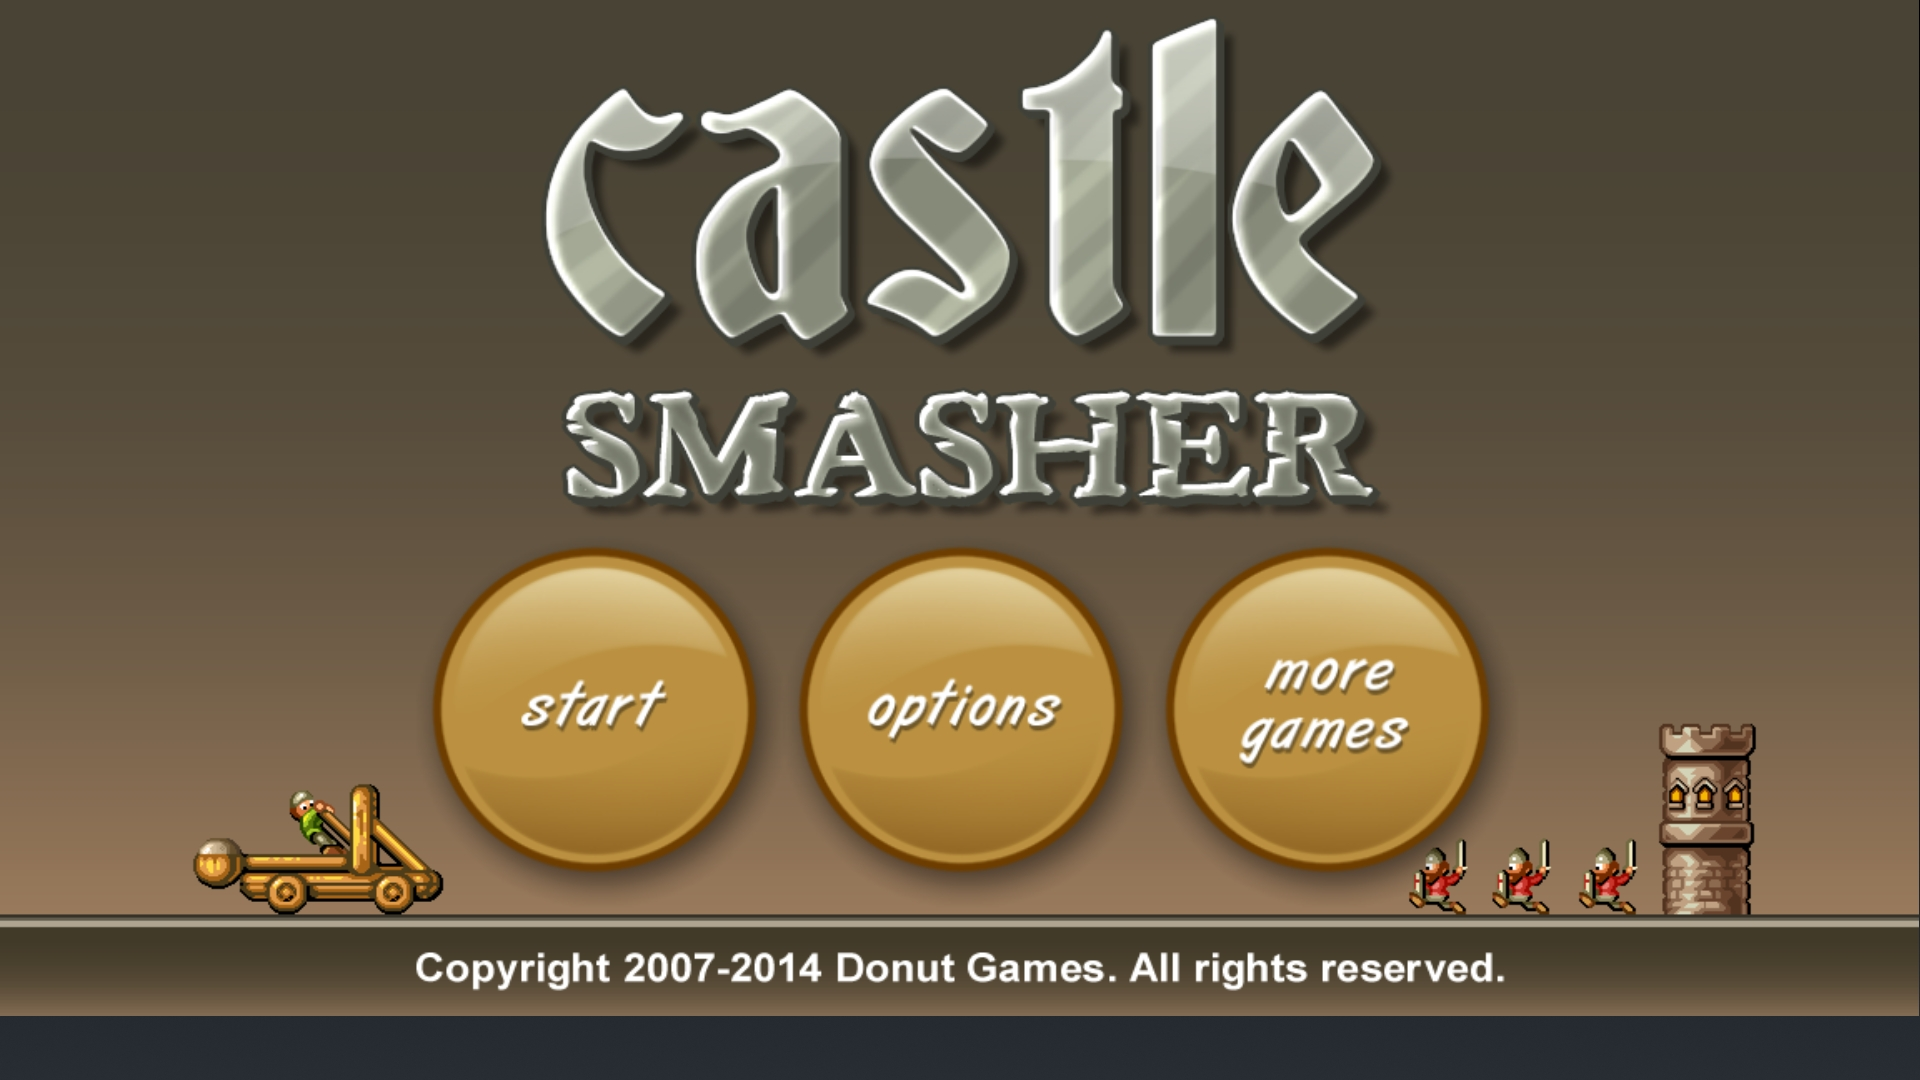 Bamse: Castle Smasher: Challenges: 14 Stronghold (Android) 122 points on 2019-08-21 17:15:06